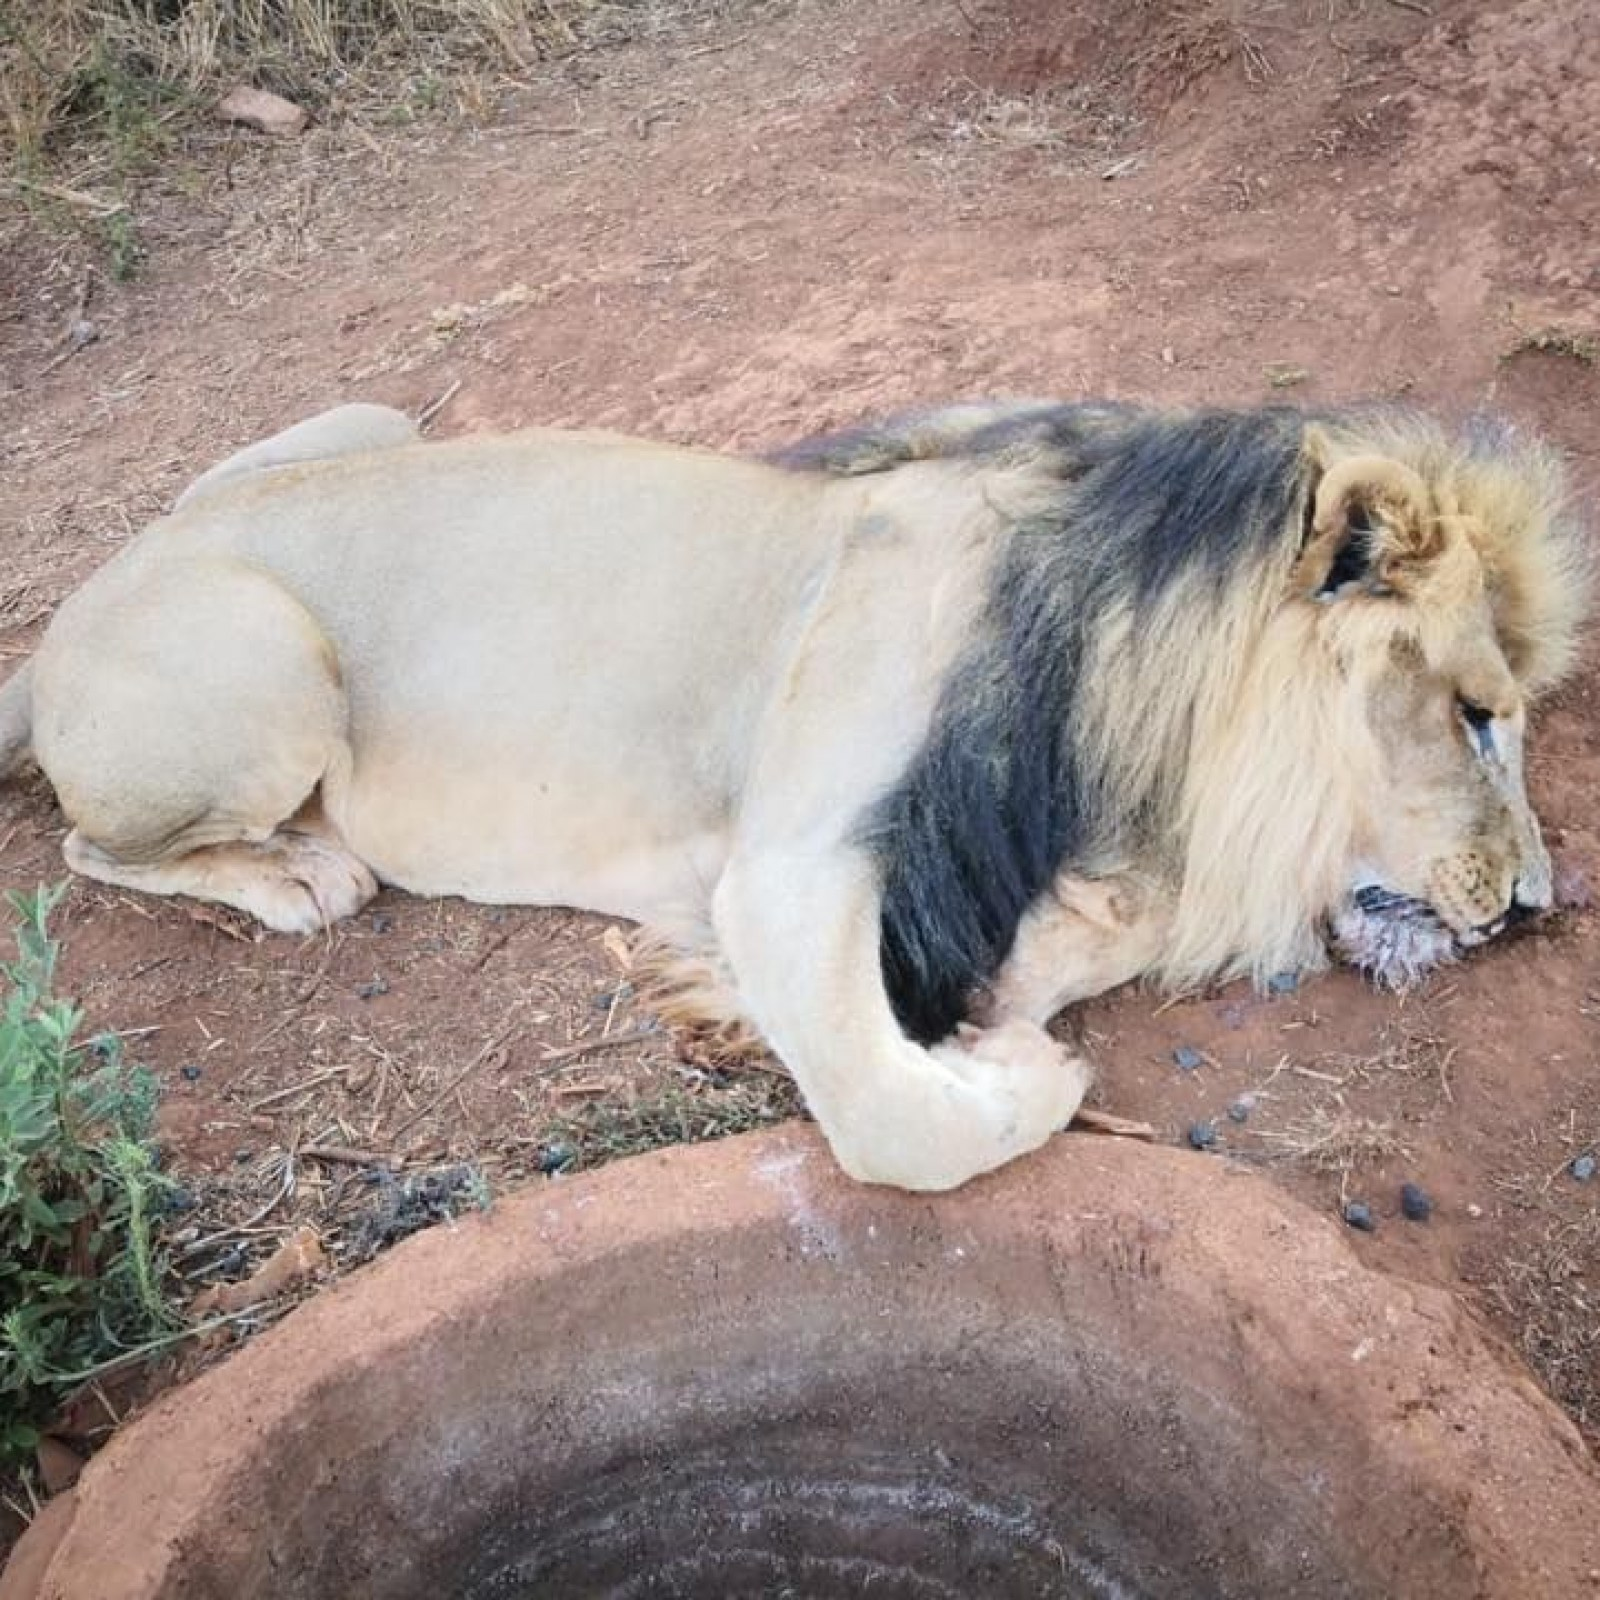 Mufasa the Lion Has Face and Paws Chopped Off, 4 Other Lions